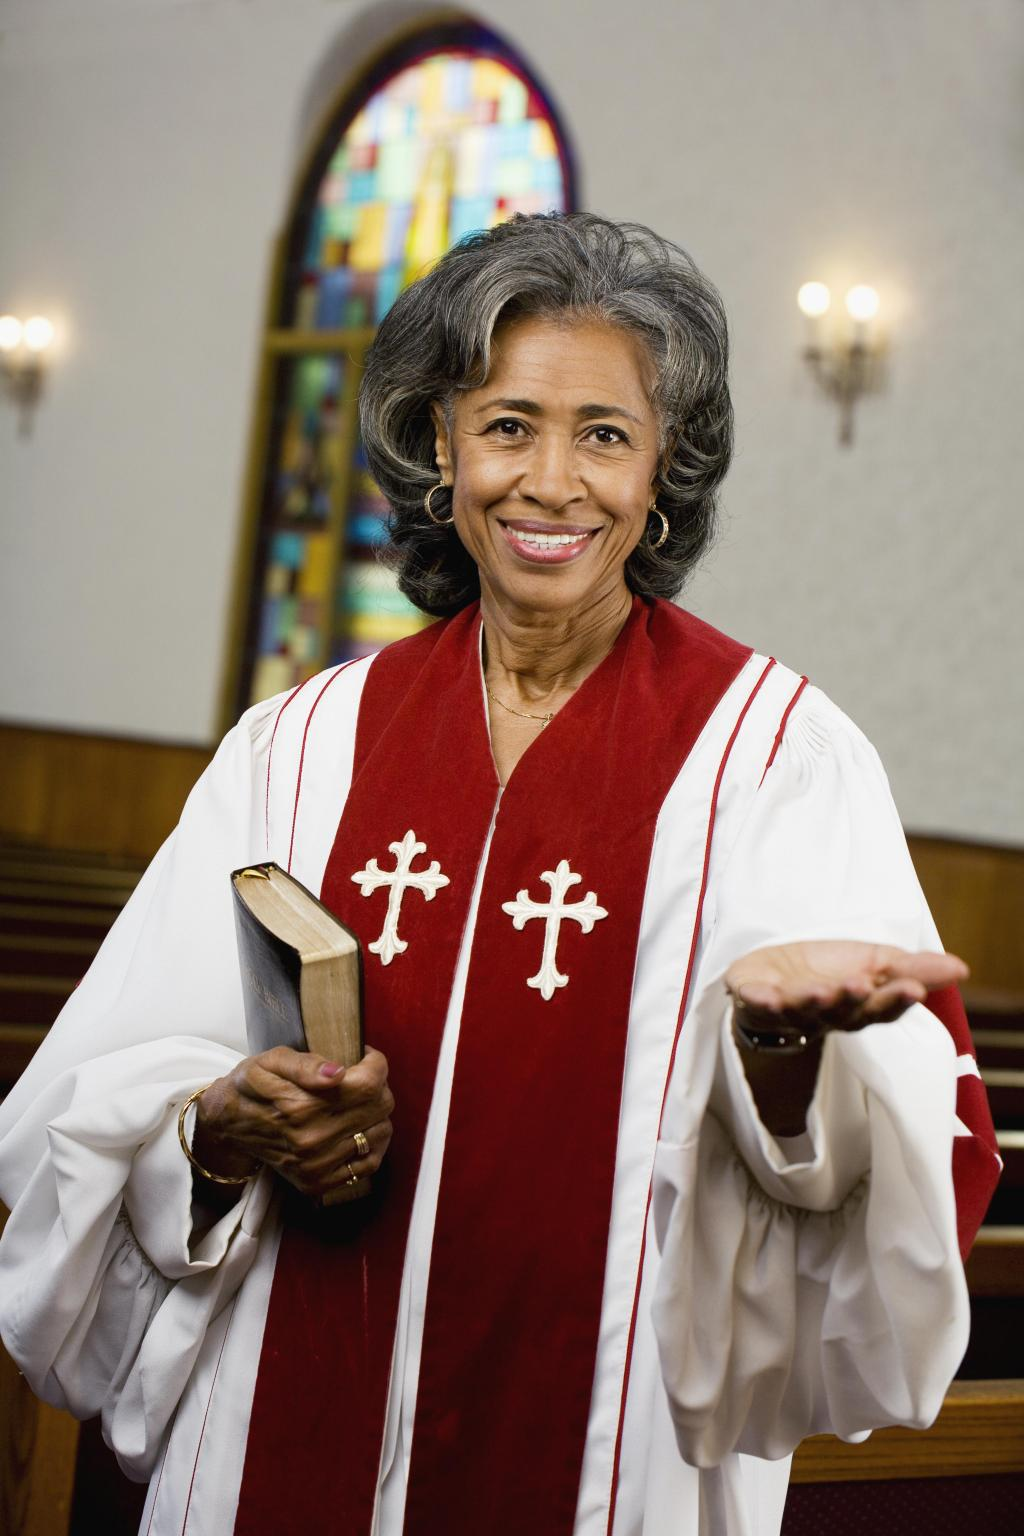 African American female Reverend holding Bible